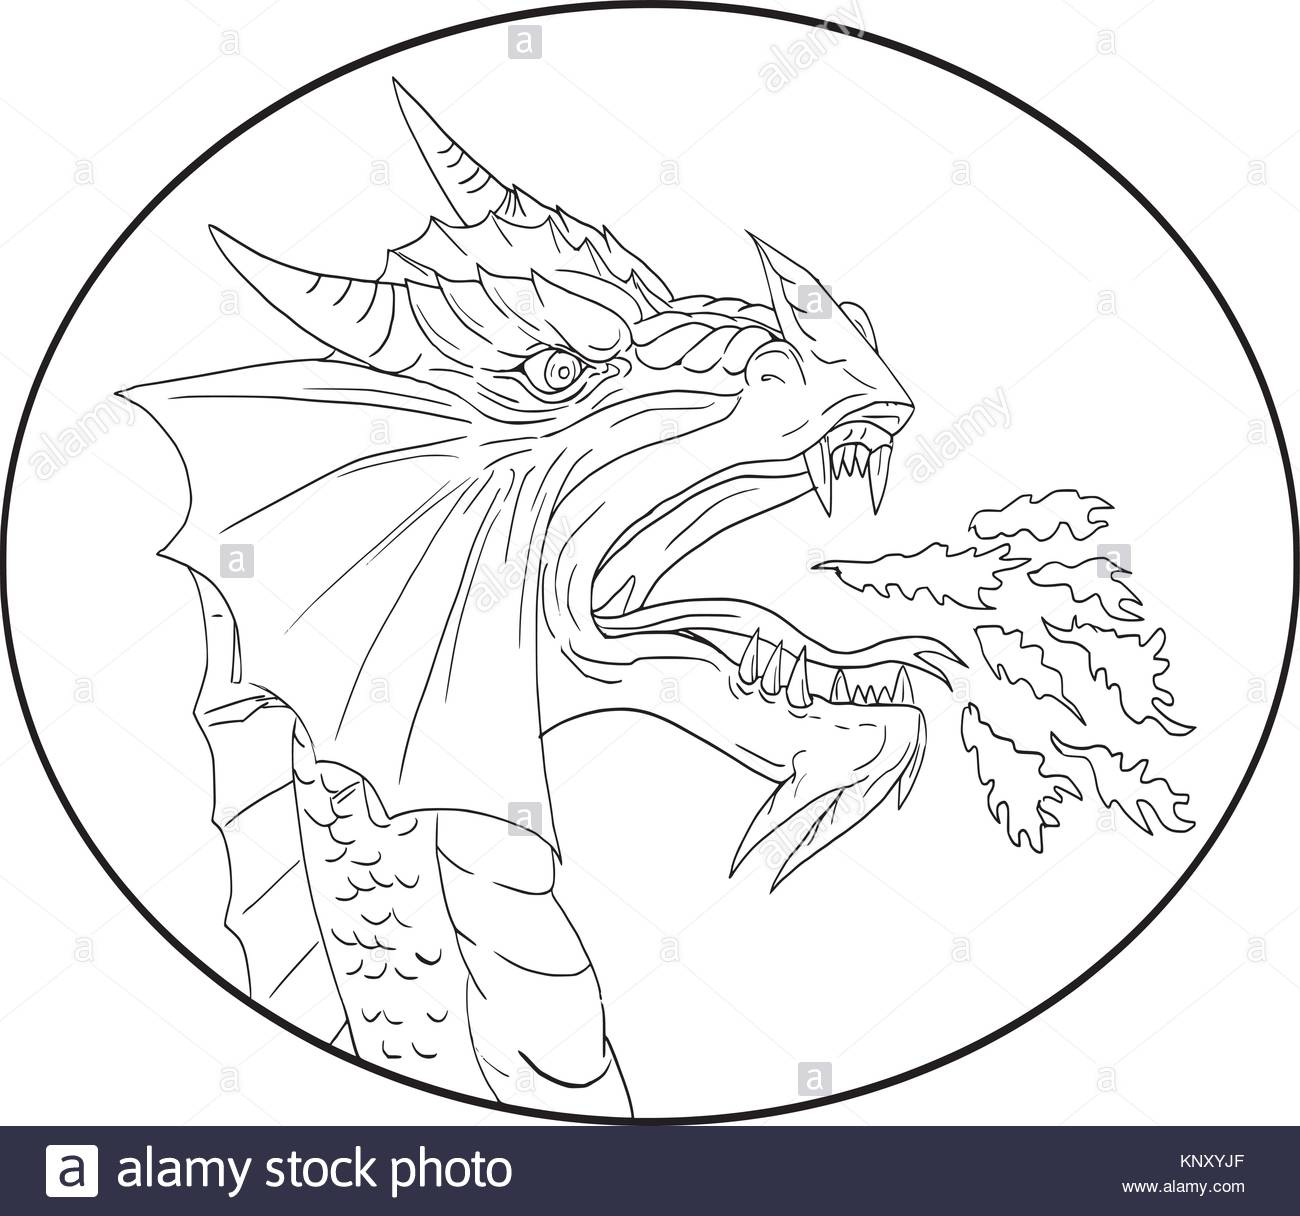 1300x1216 Drawing Sketch Style Illustration Of A Dragon Breathing Fire